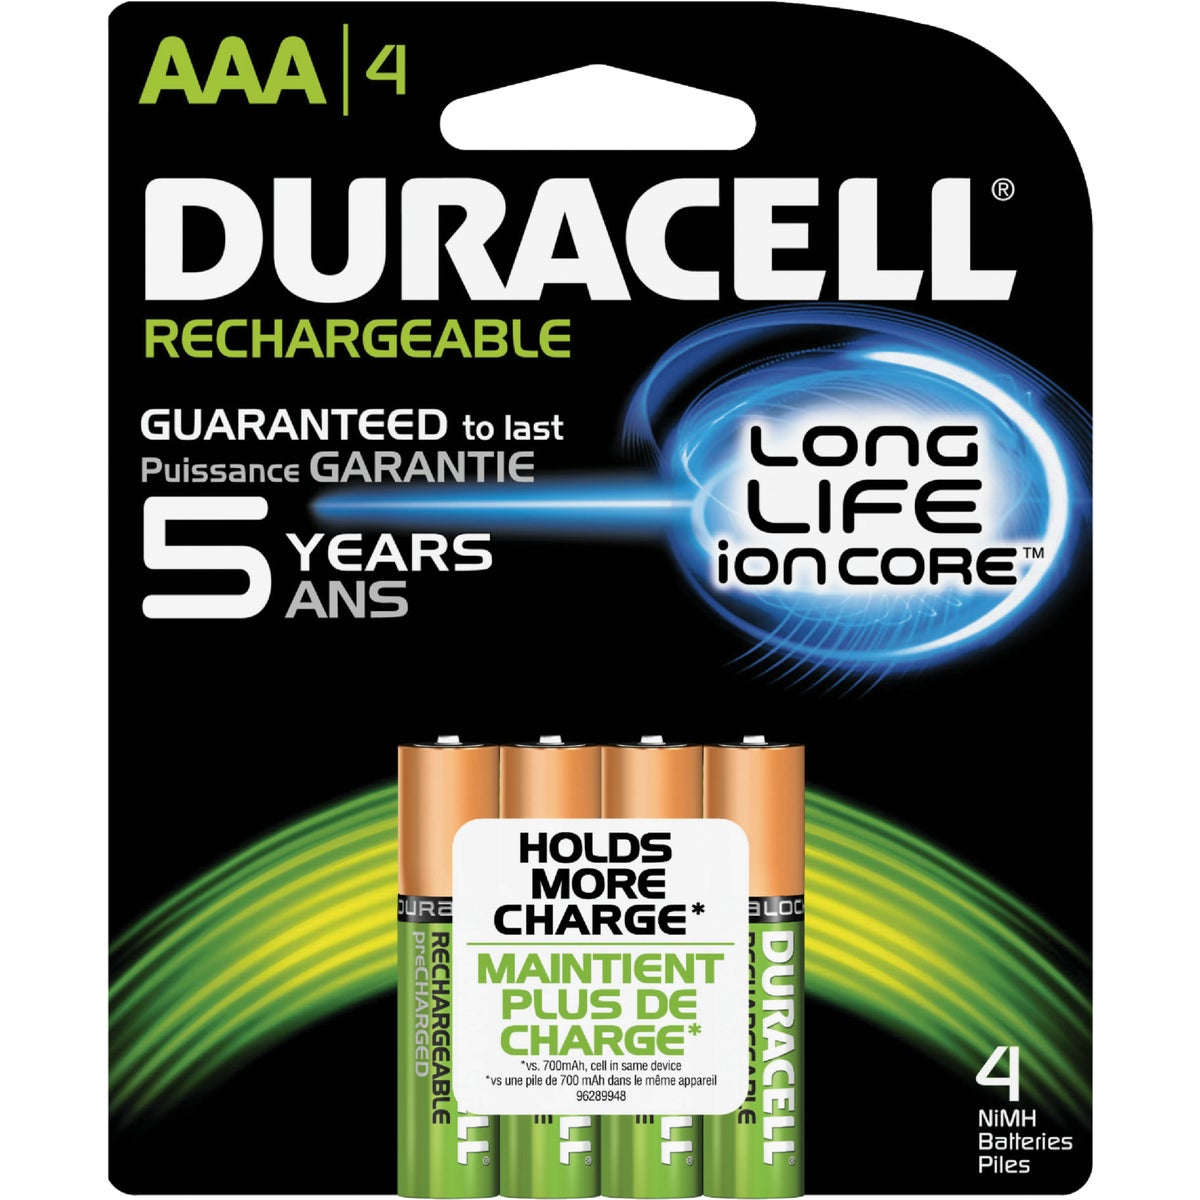 DURACELL STAYCHARGED AAA - 66160 by P & G  Duracell